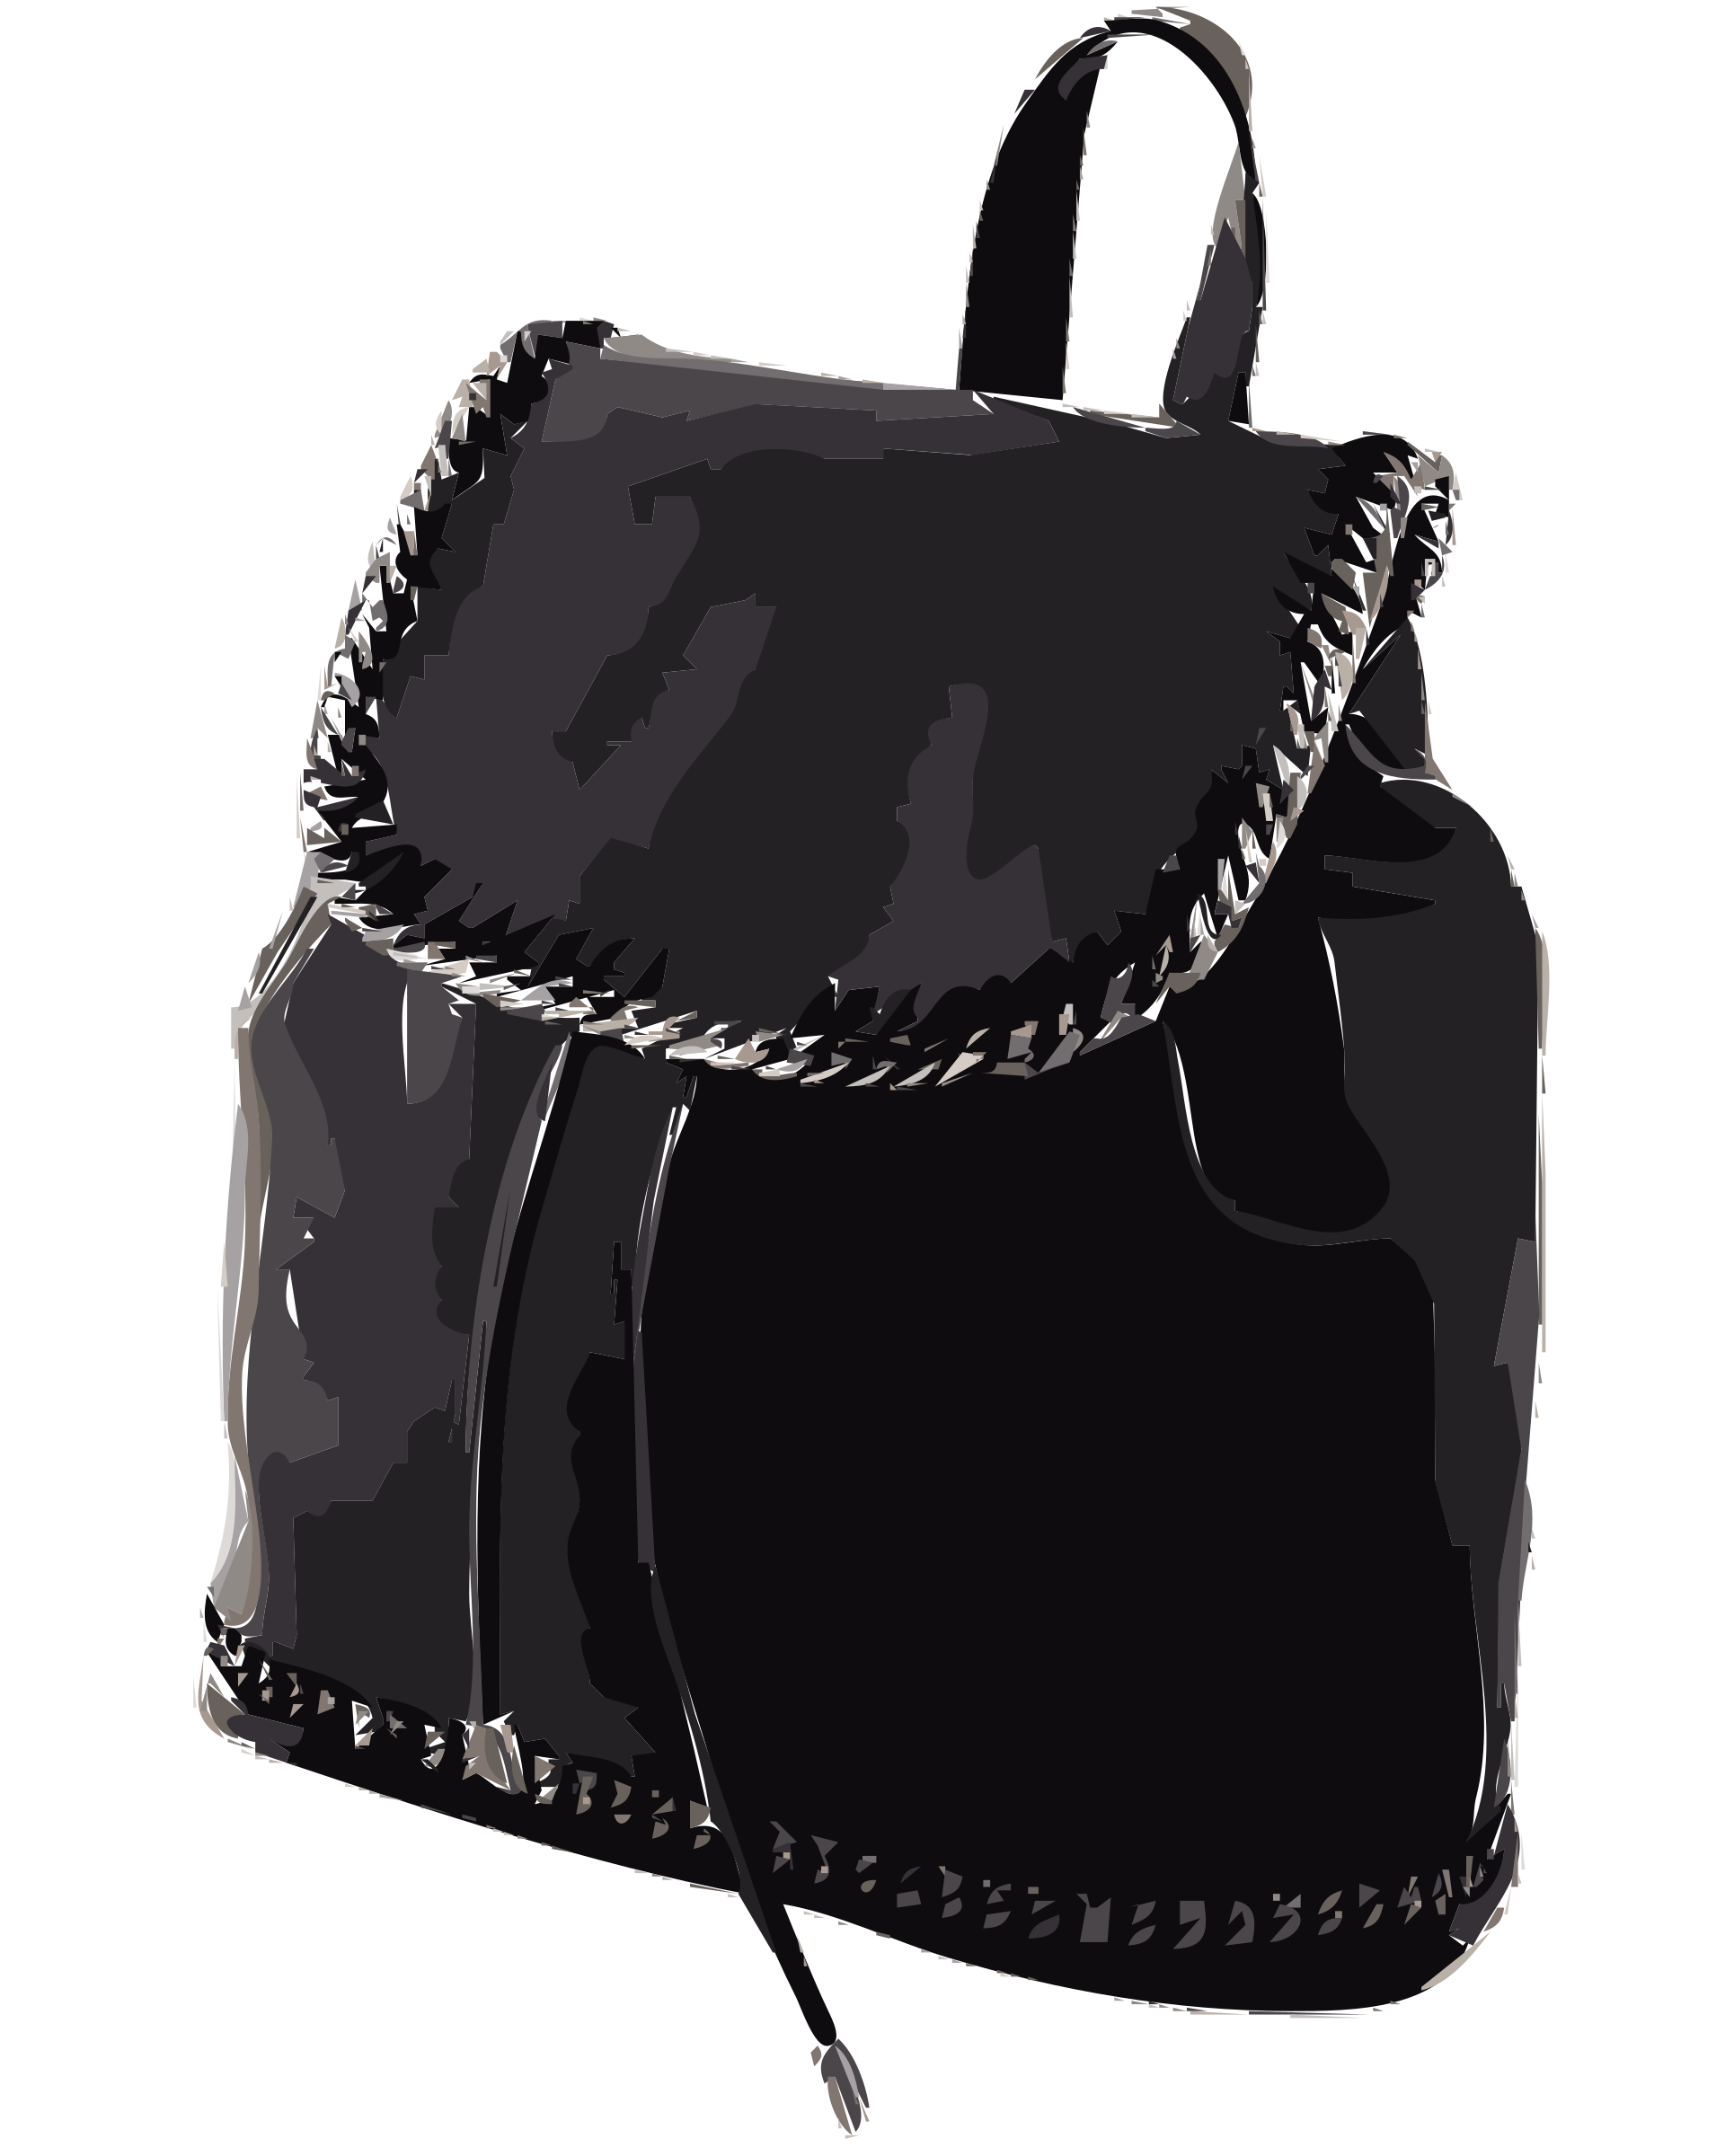 Black Leather Backpack without logo by rejon